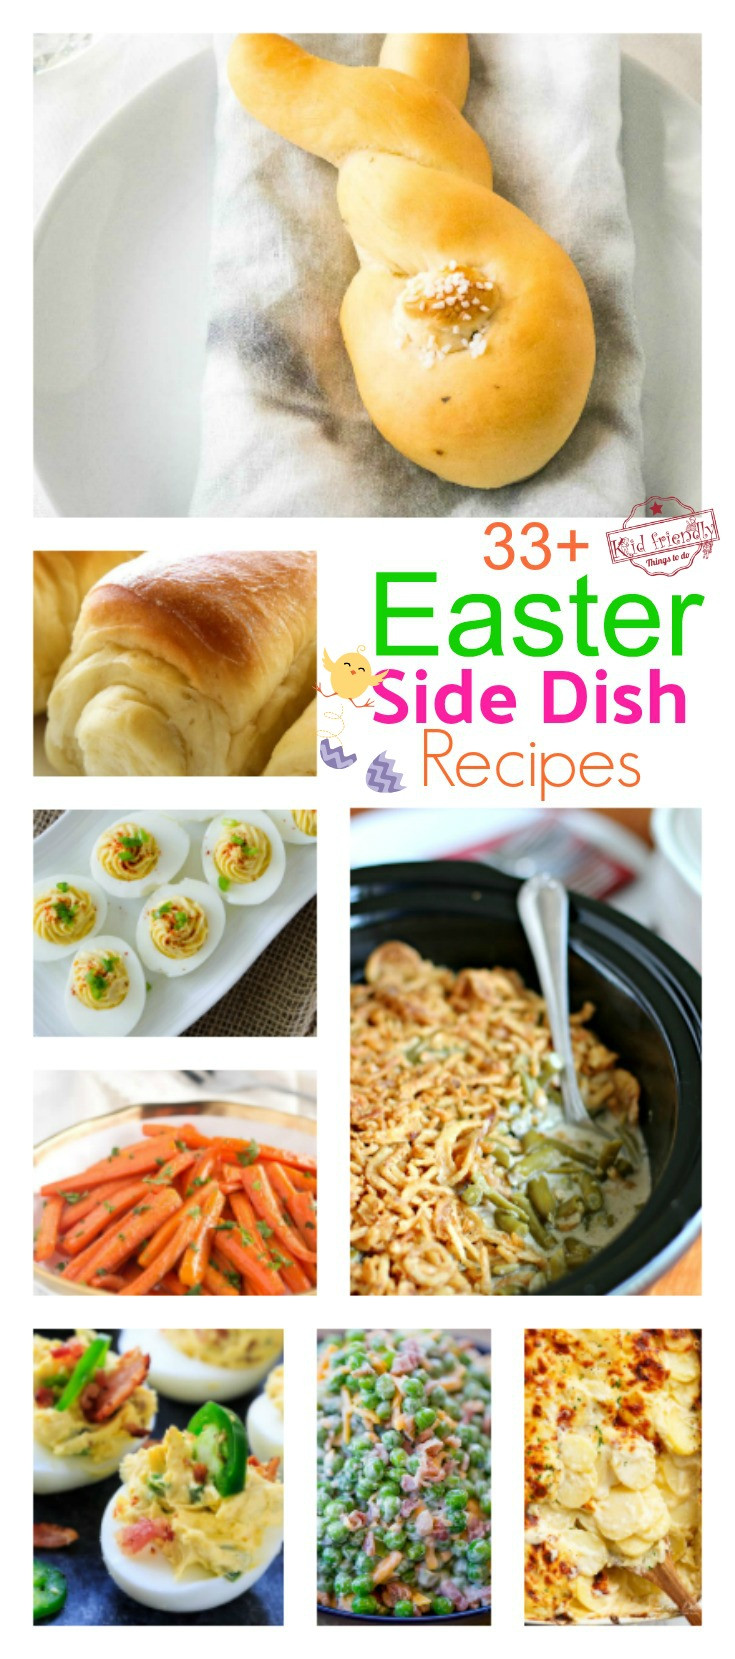 Traditional Easter Dinner Sides  Over 33 Easter Side Dish Recipes for Your Celebration Dinner